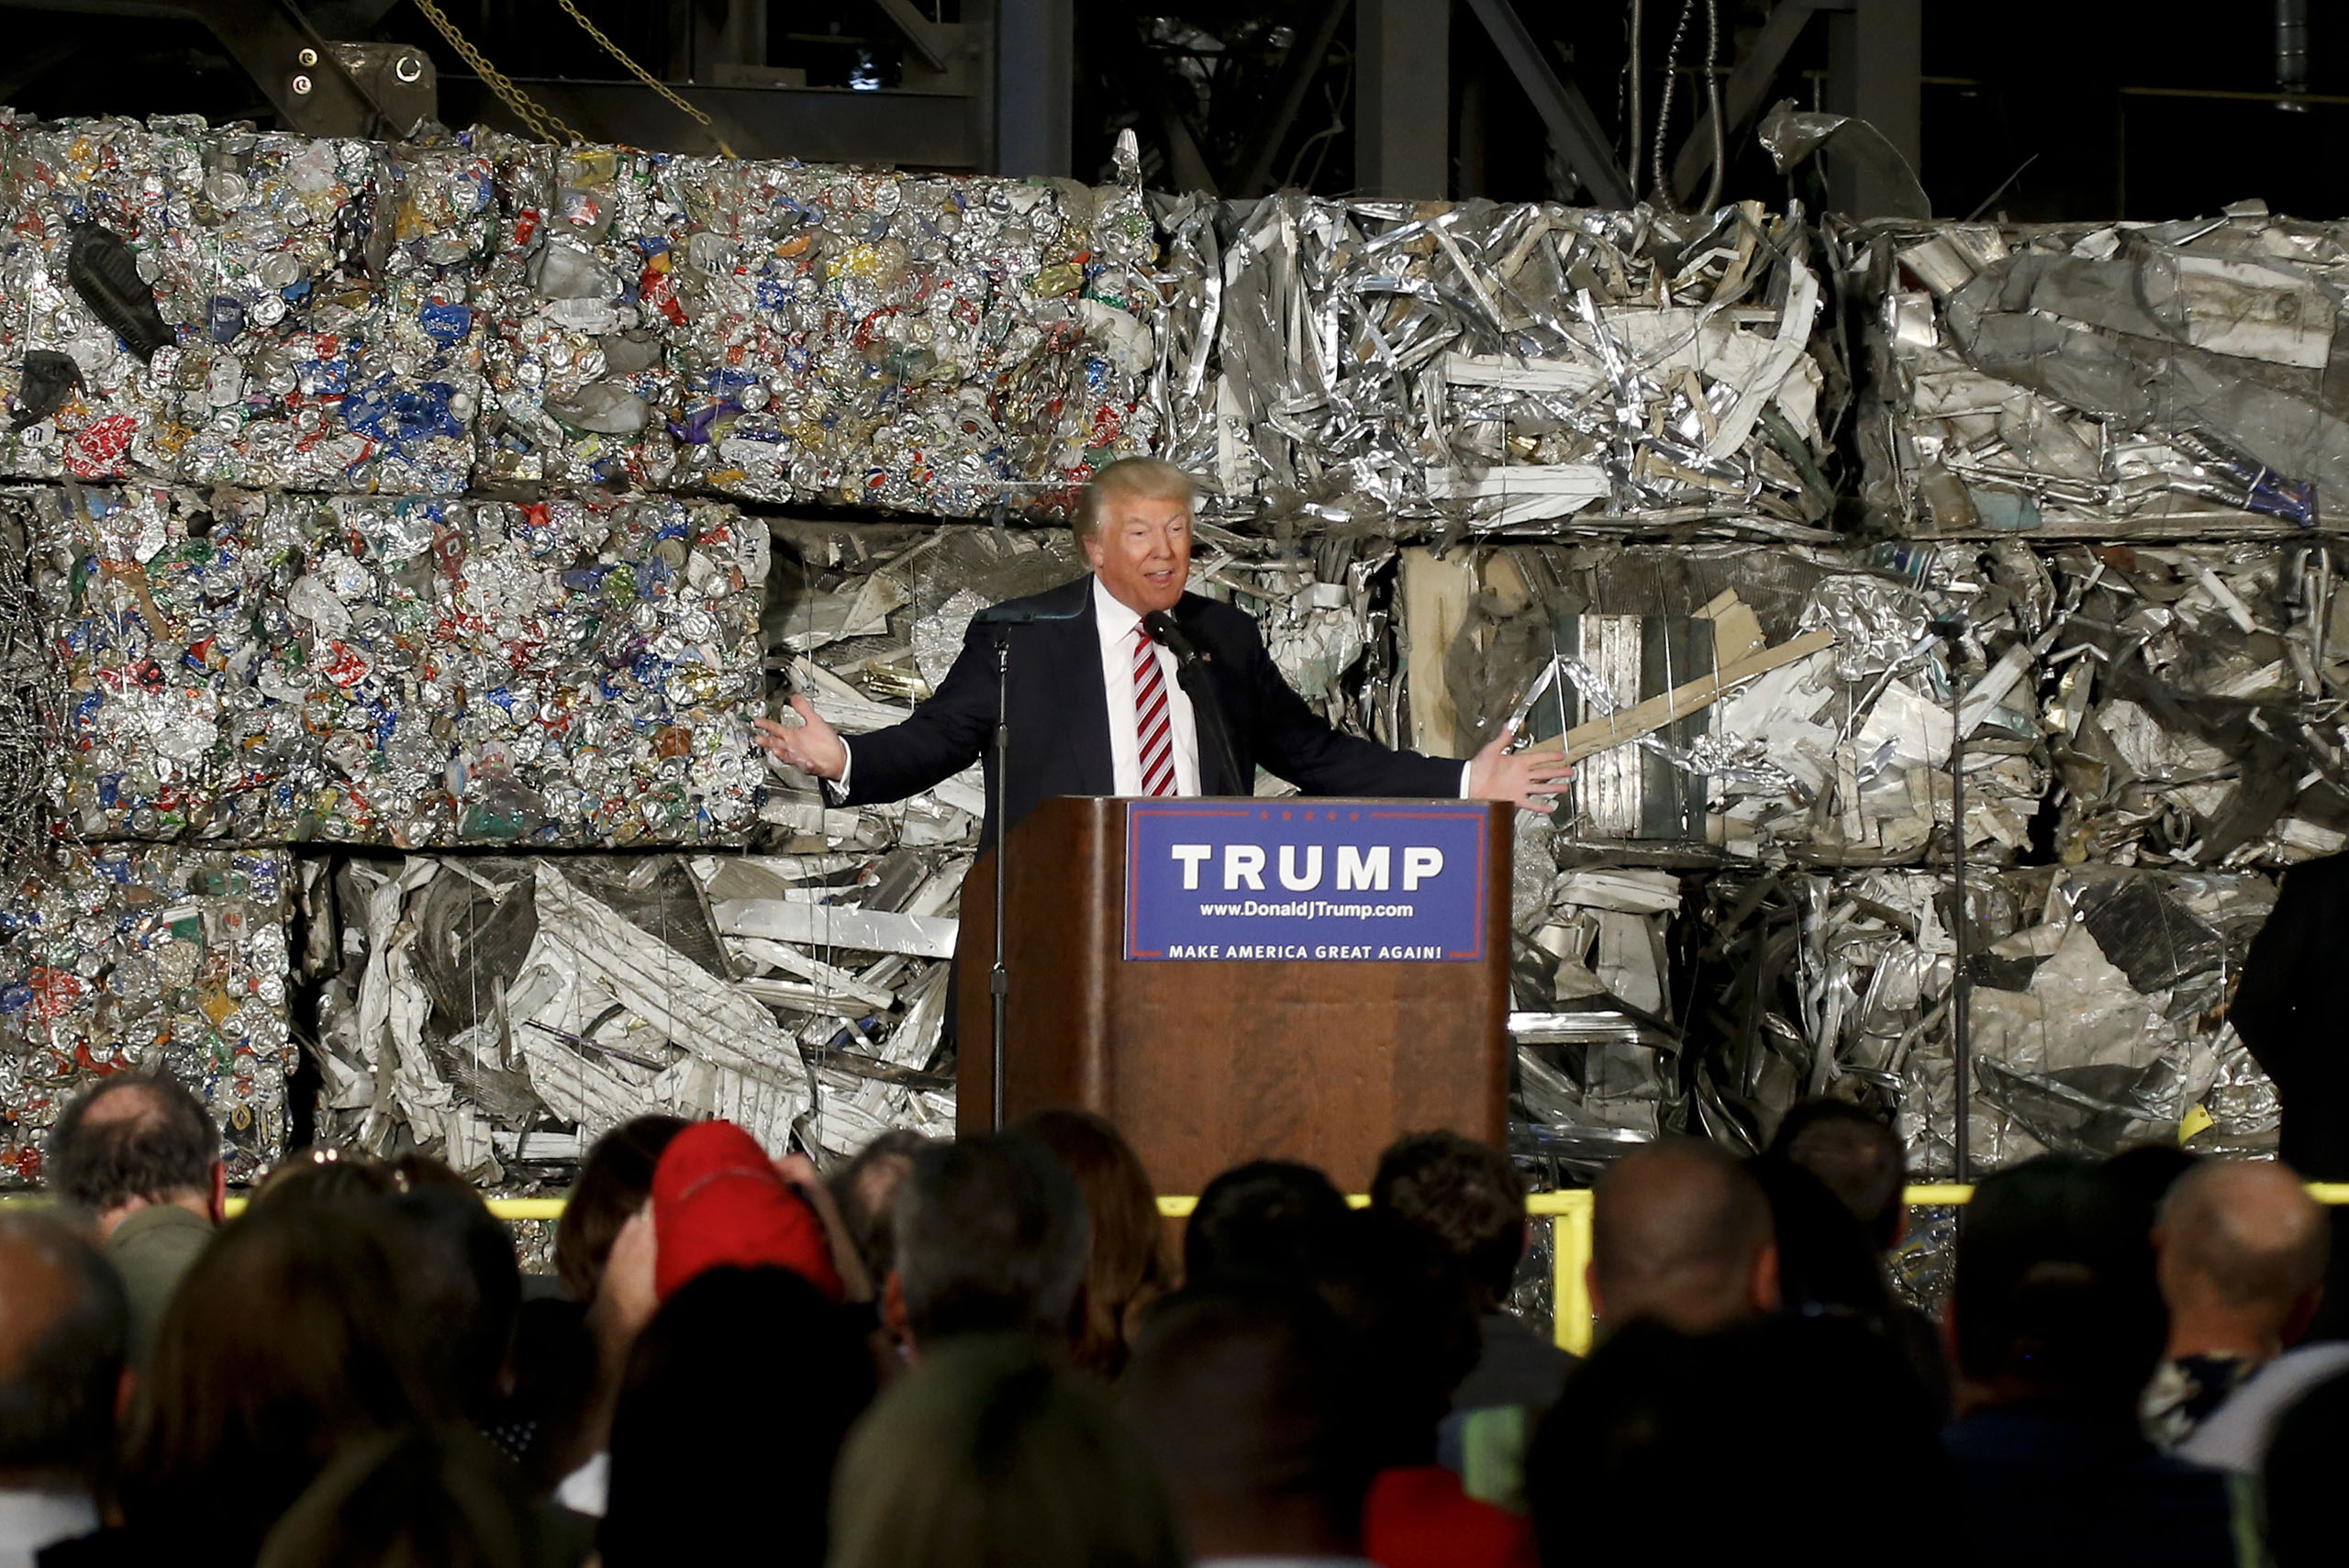 Donald Trump speaks during a campaign stop at Alumisource, a metals recycling facility in Monessen, PA, June 28, 2016.